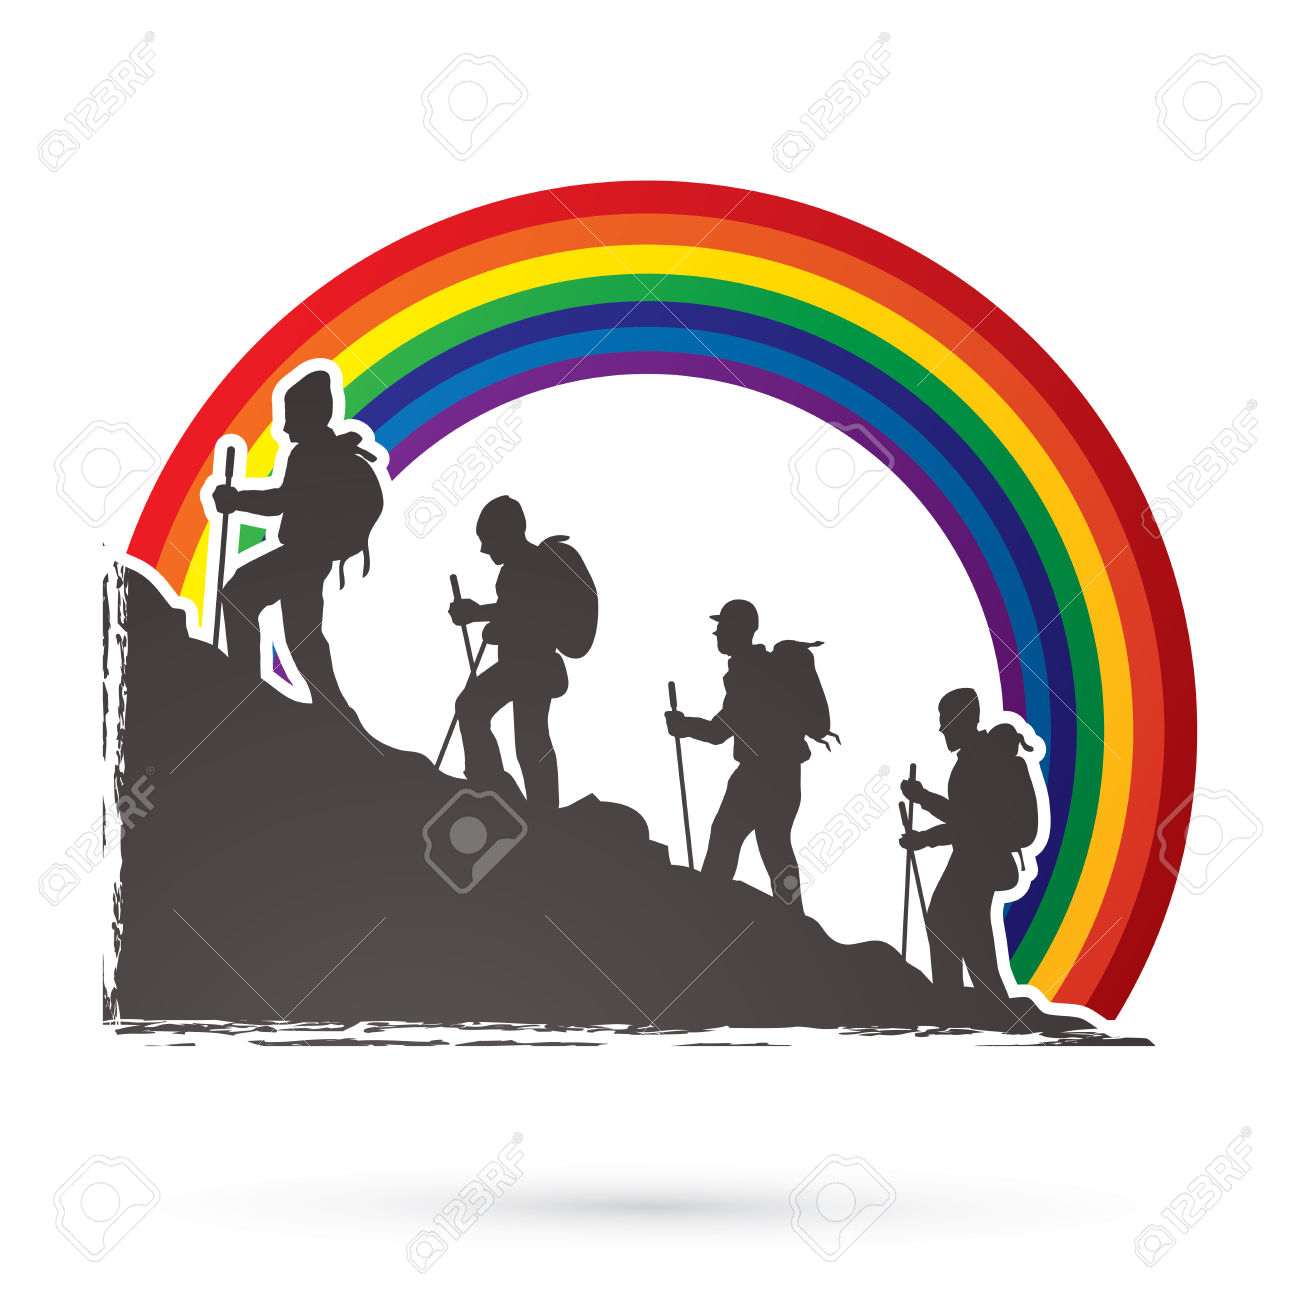 A Group Of People Walking On Mountain Designed On Rainbows.